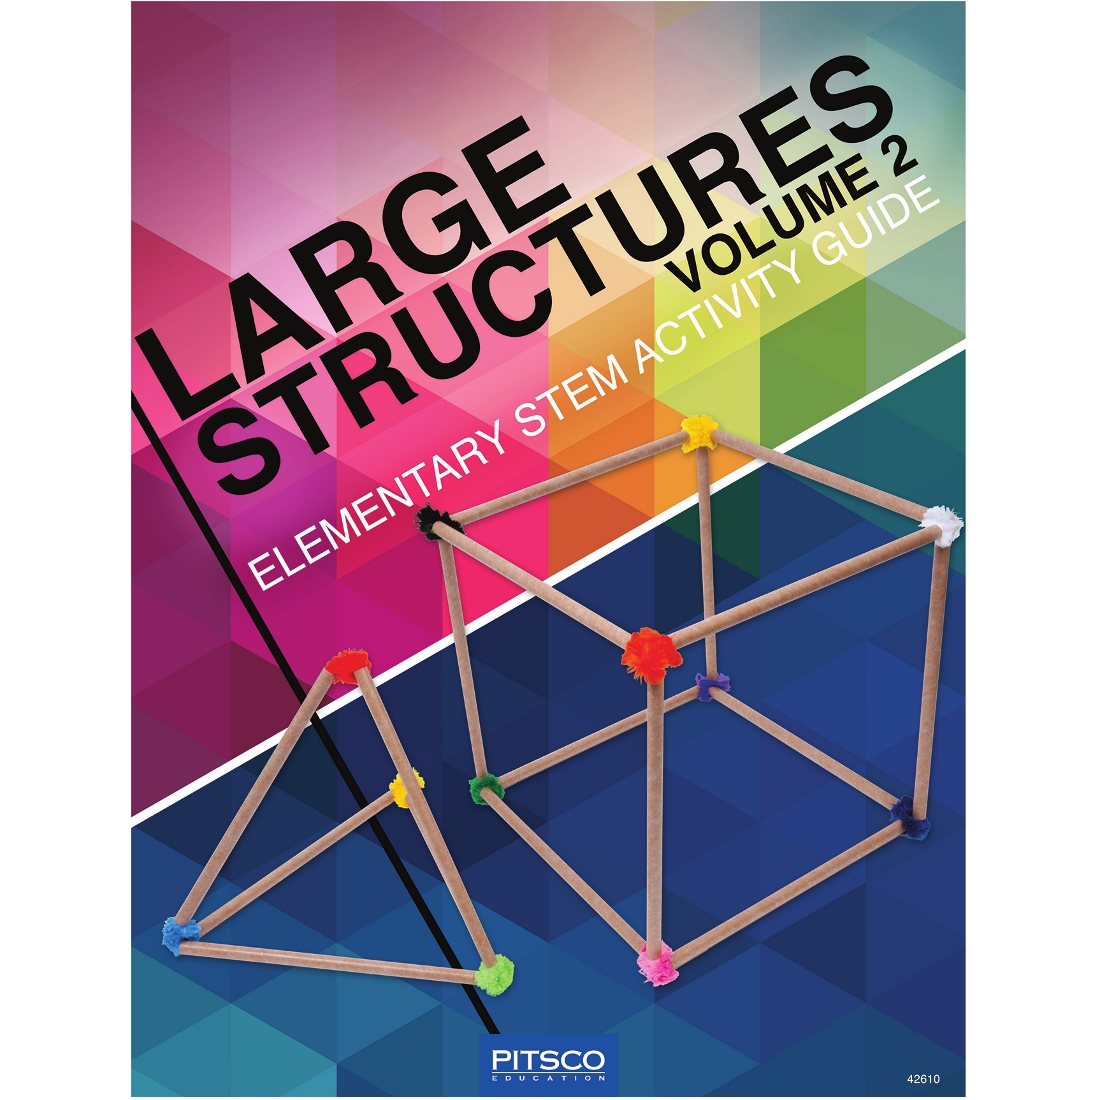 What Is A Stem Elementary School: Large Structures Elementary STEM Activity Guide Volume 2